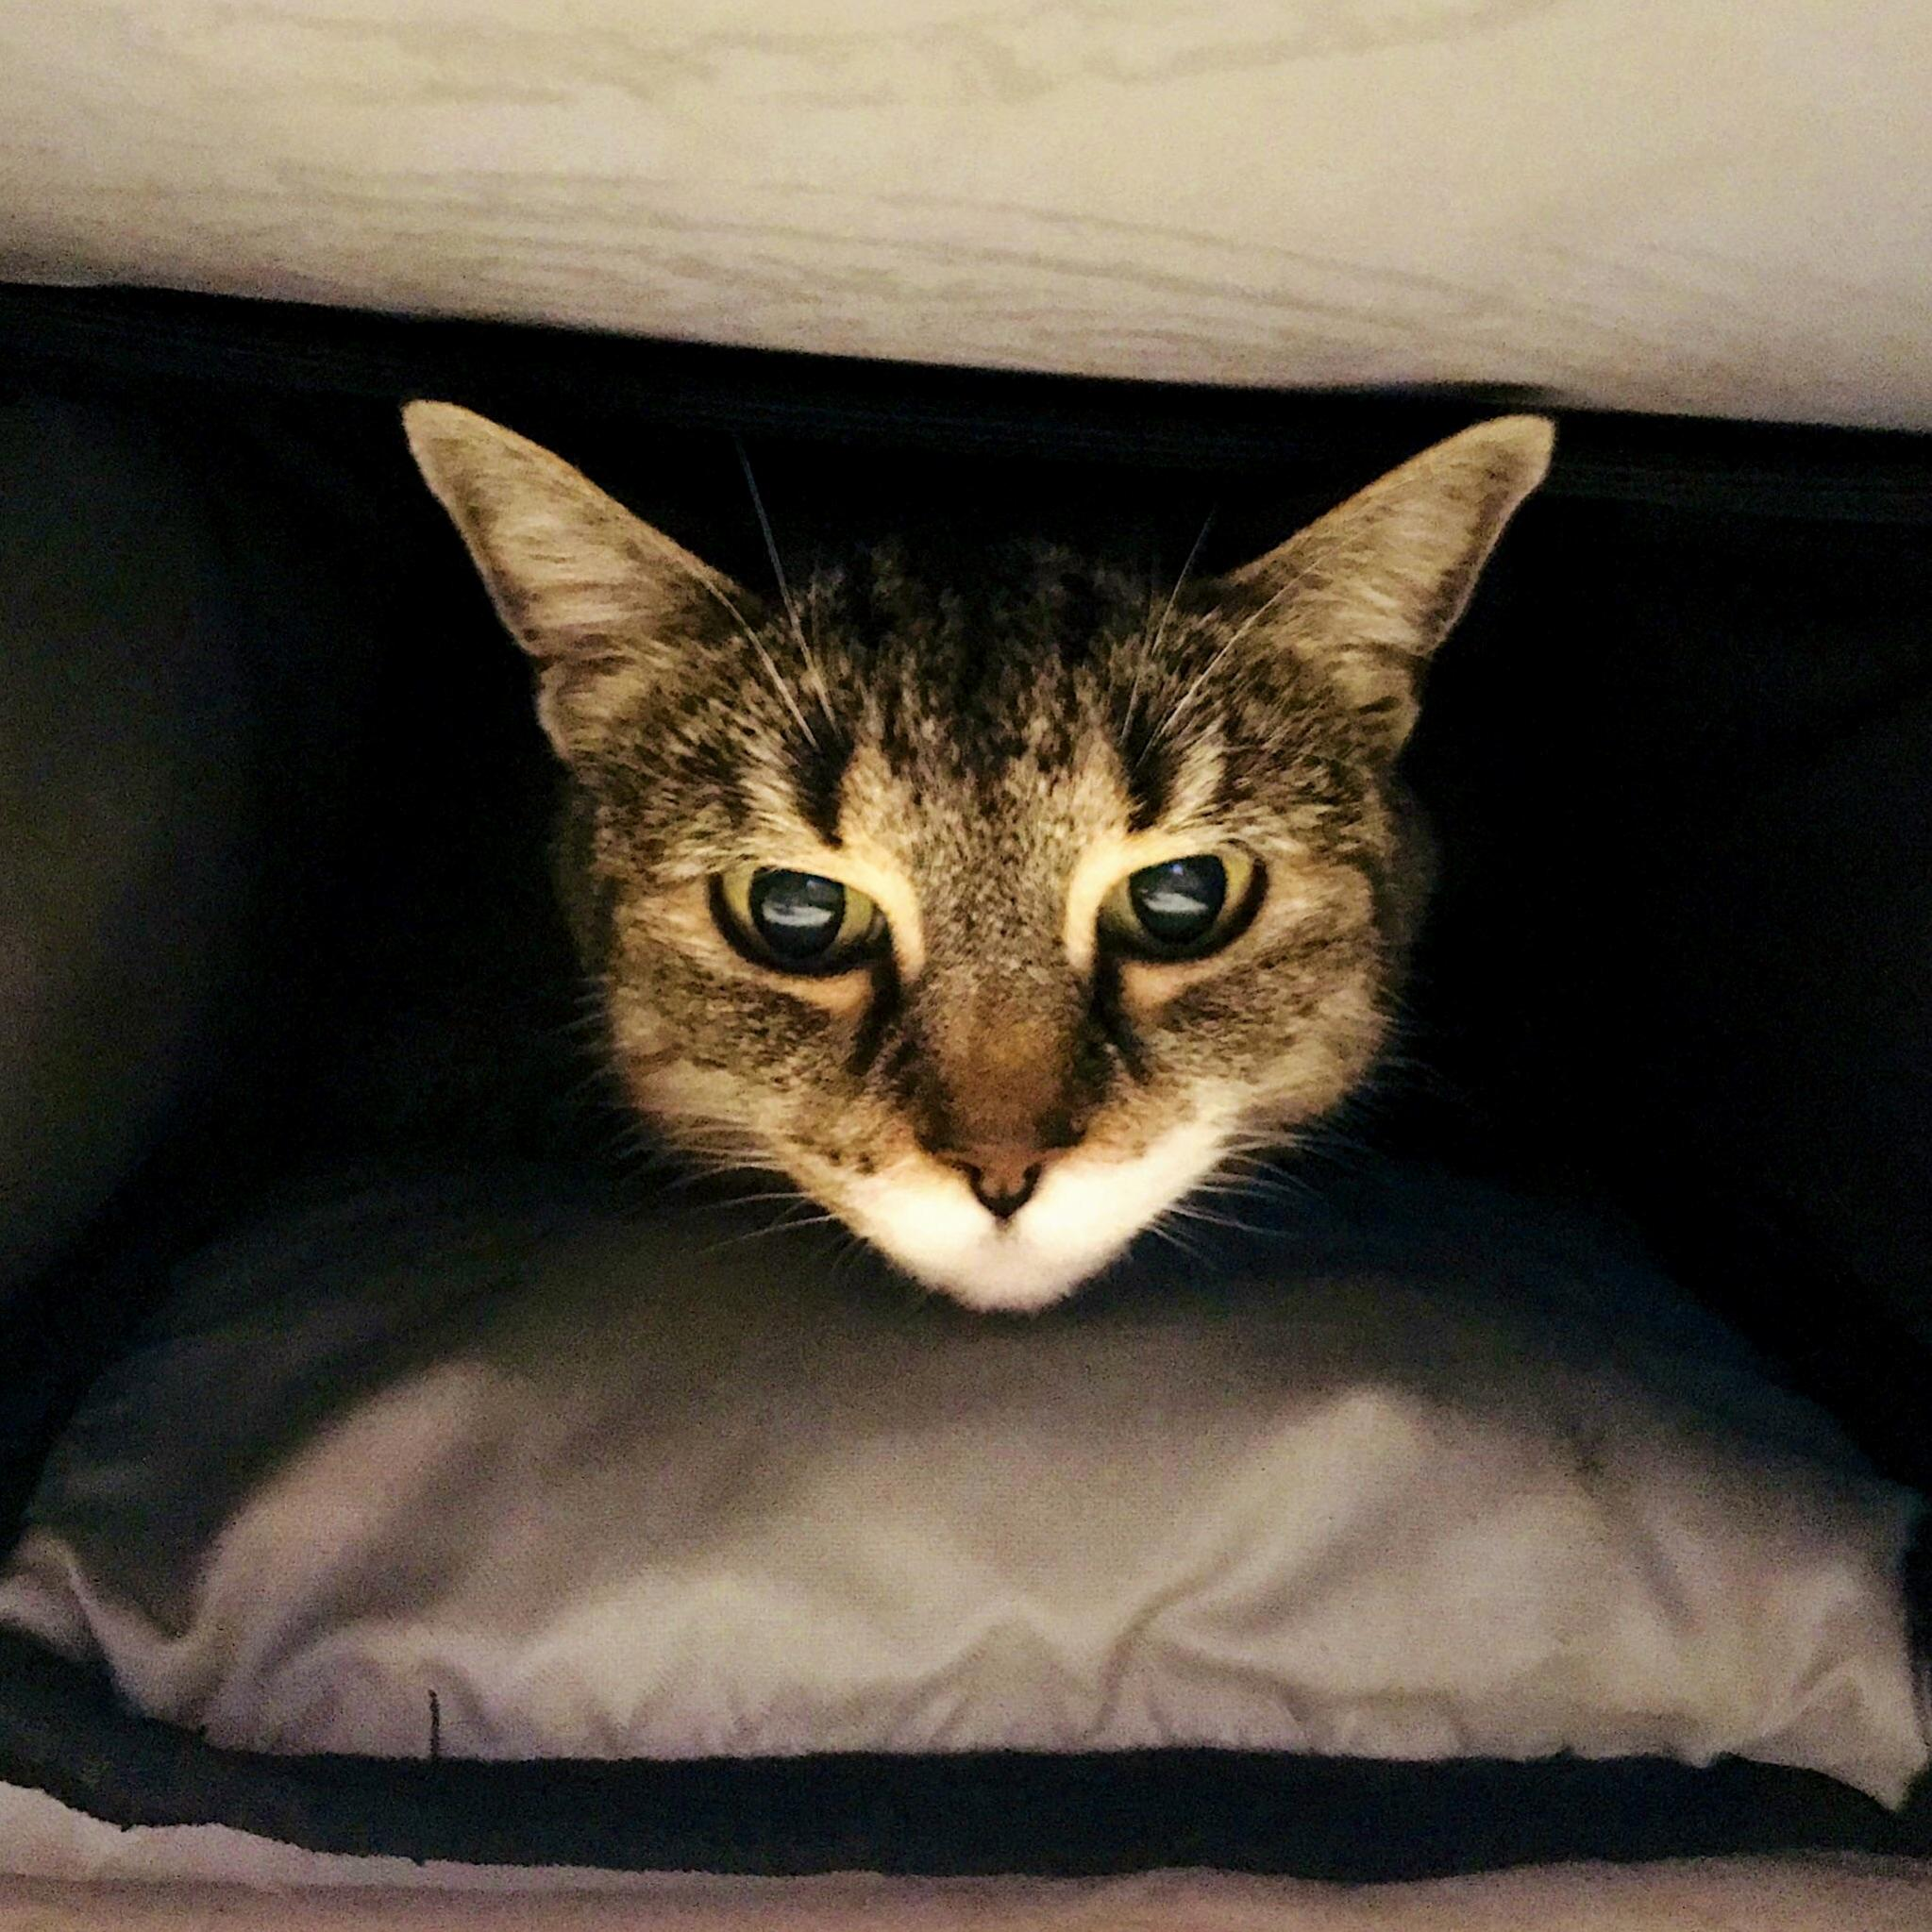 My backpack, the cat cave